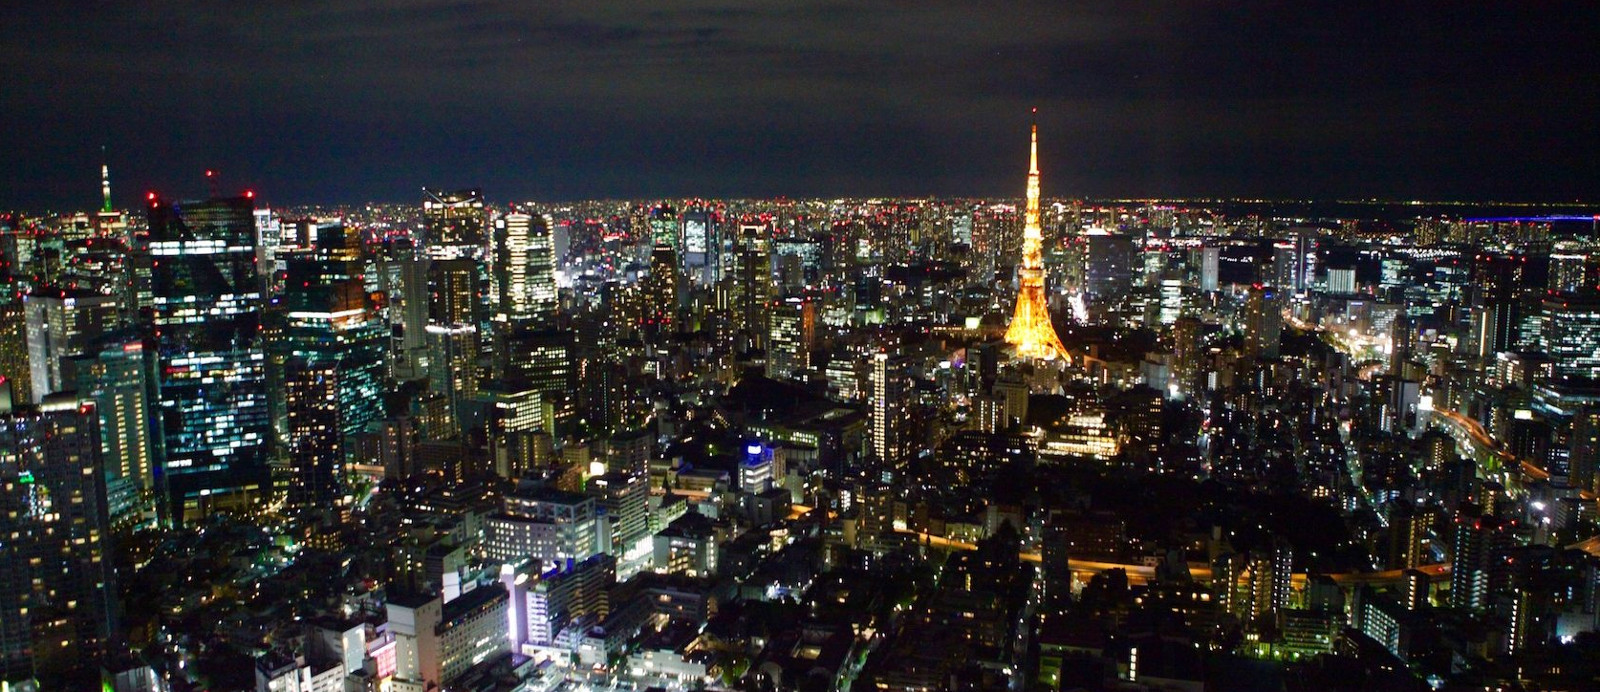 Effective immediately our office in Tokyo, Japan has moved to a new location